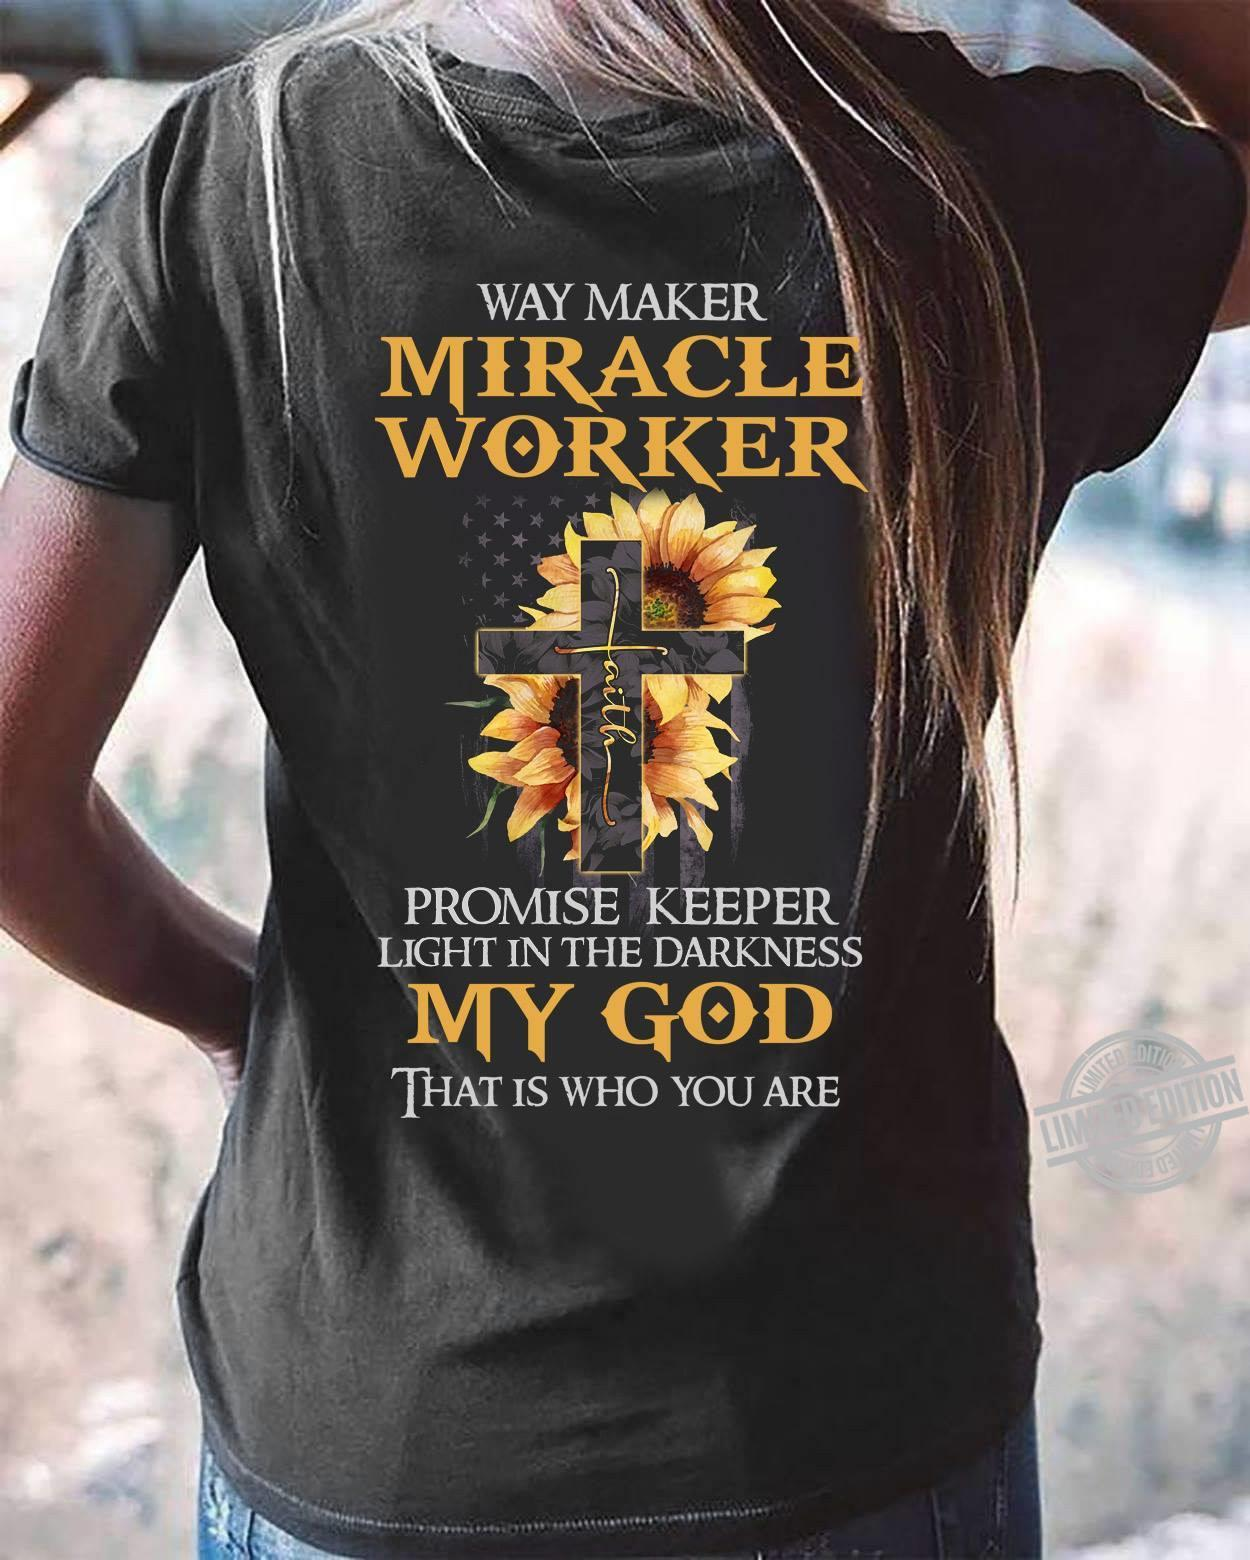 May Maker Miracle Worker Faith Promise Keeper Light In The Darkness My God That Is Who You Are Shirt